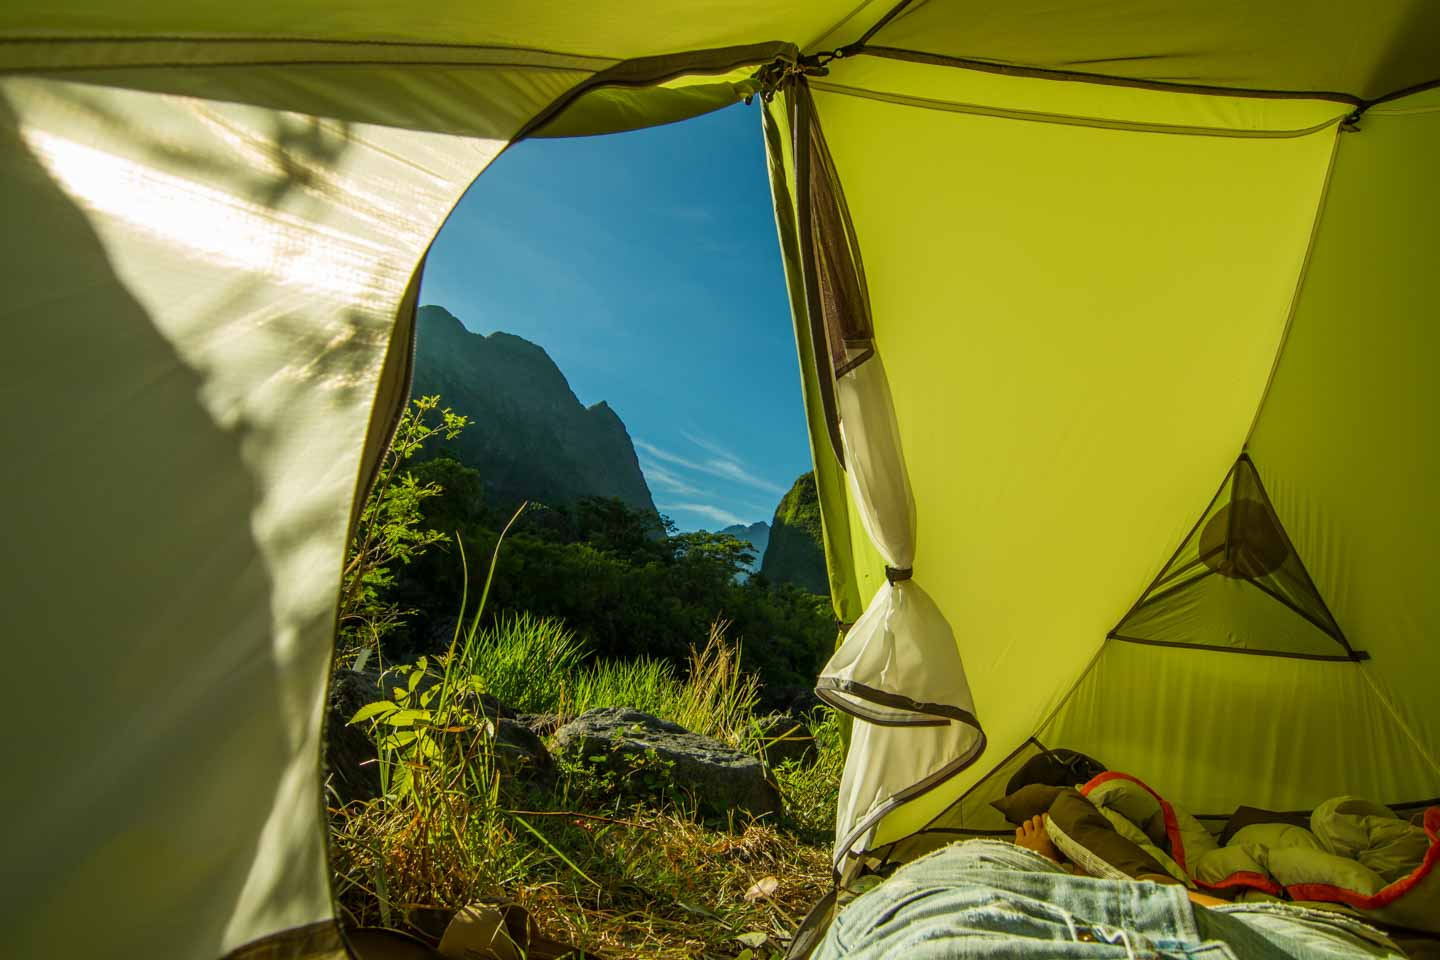 Waking up in a MSR Hubba Hubba HP tent on a hike in La Réunion Island close to Madagascar